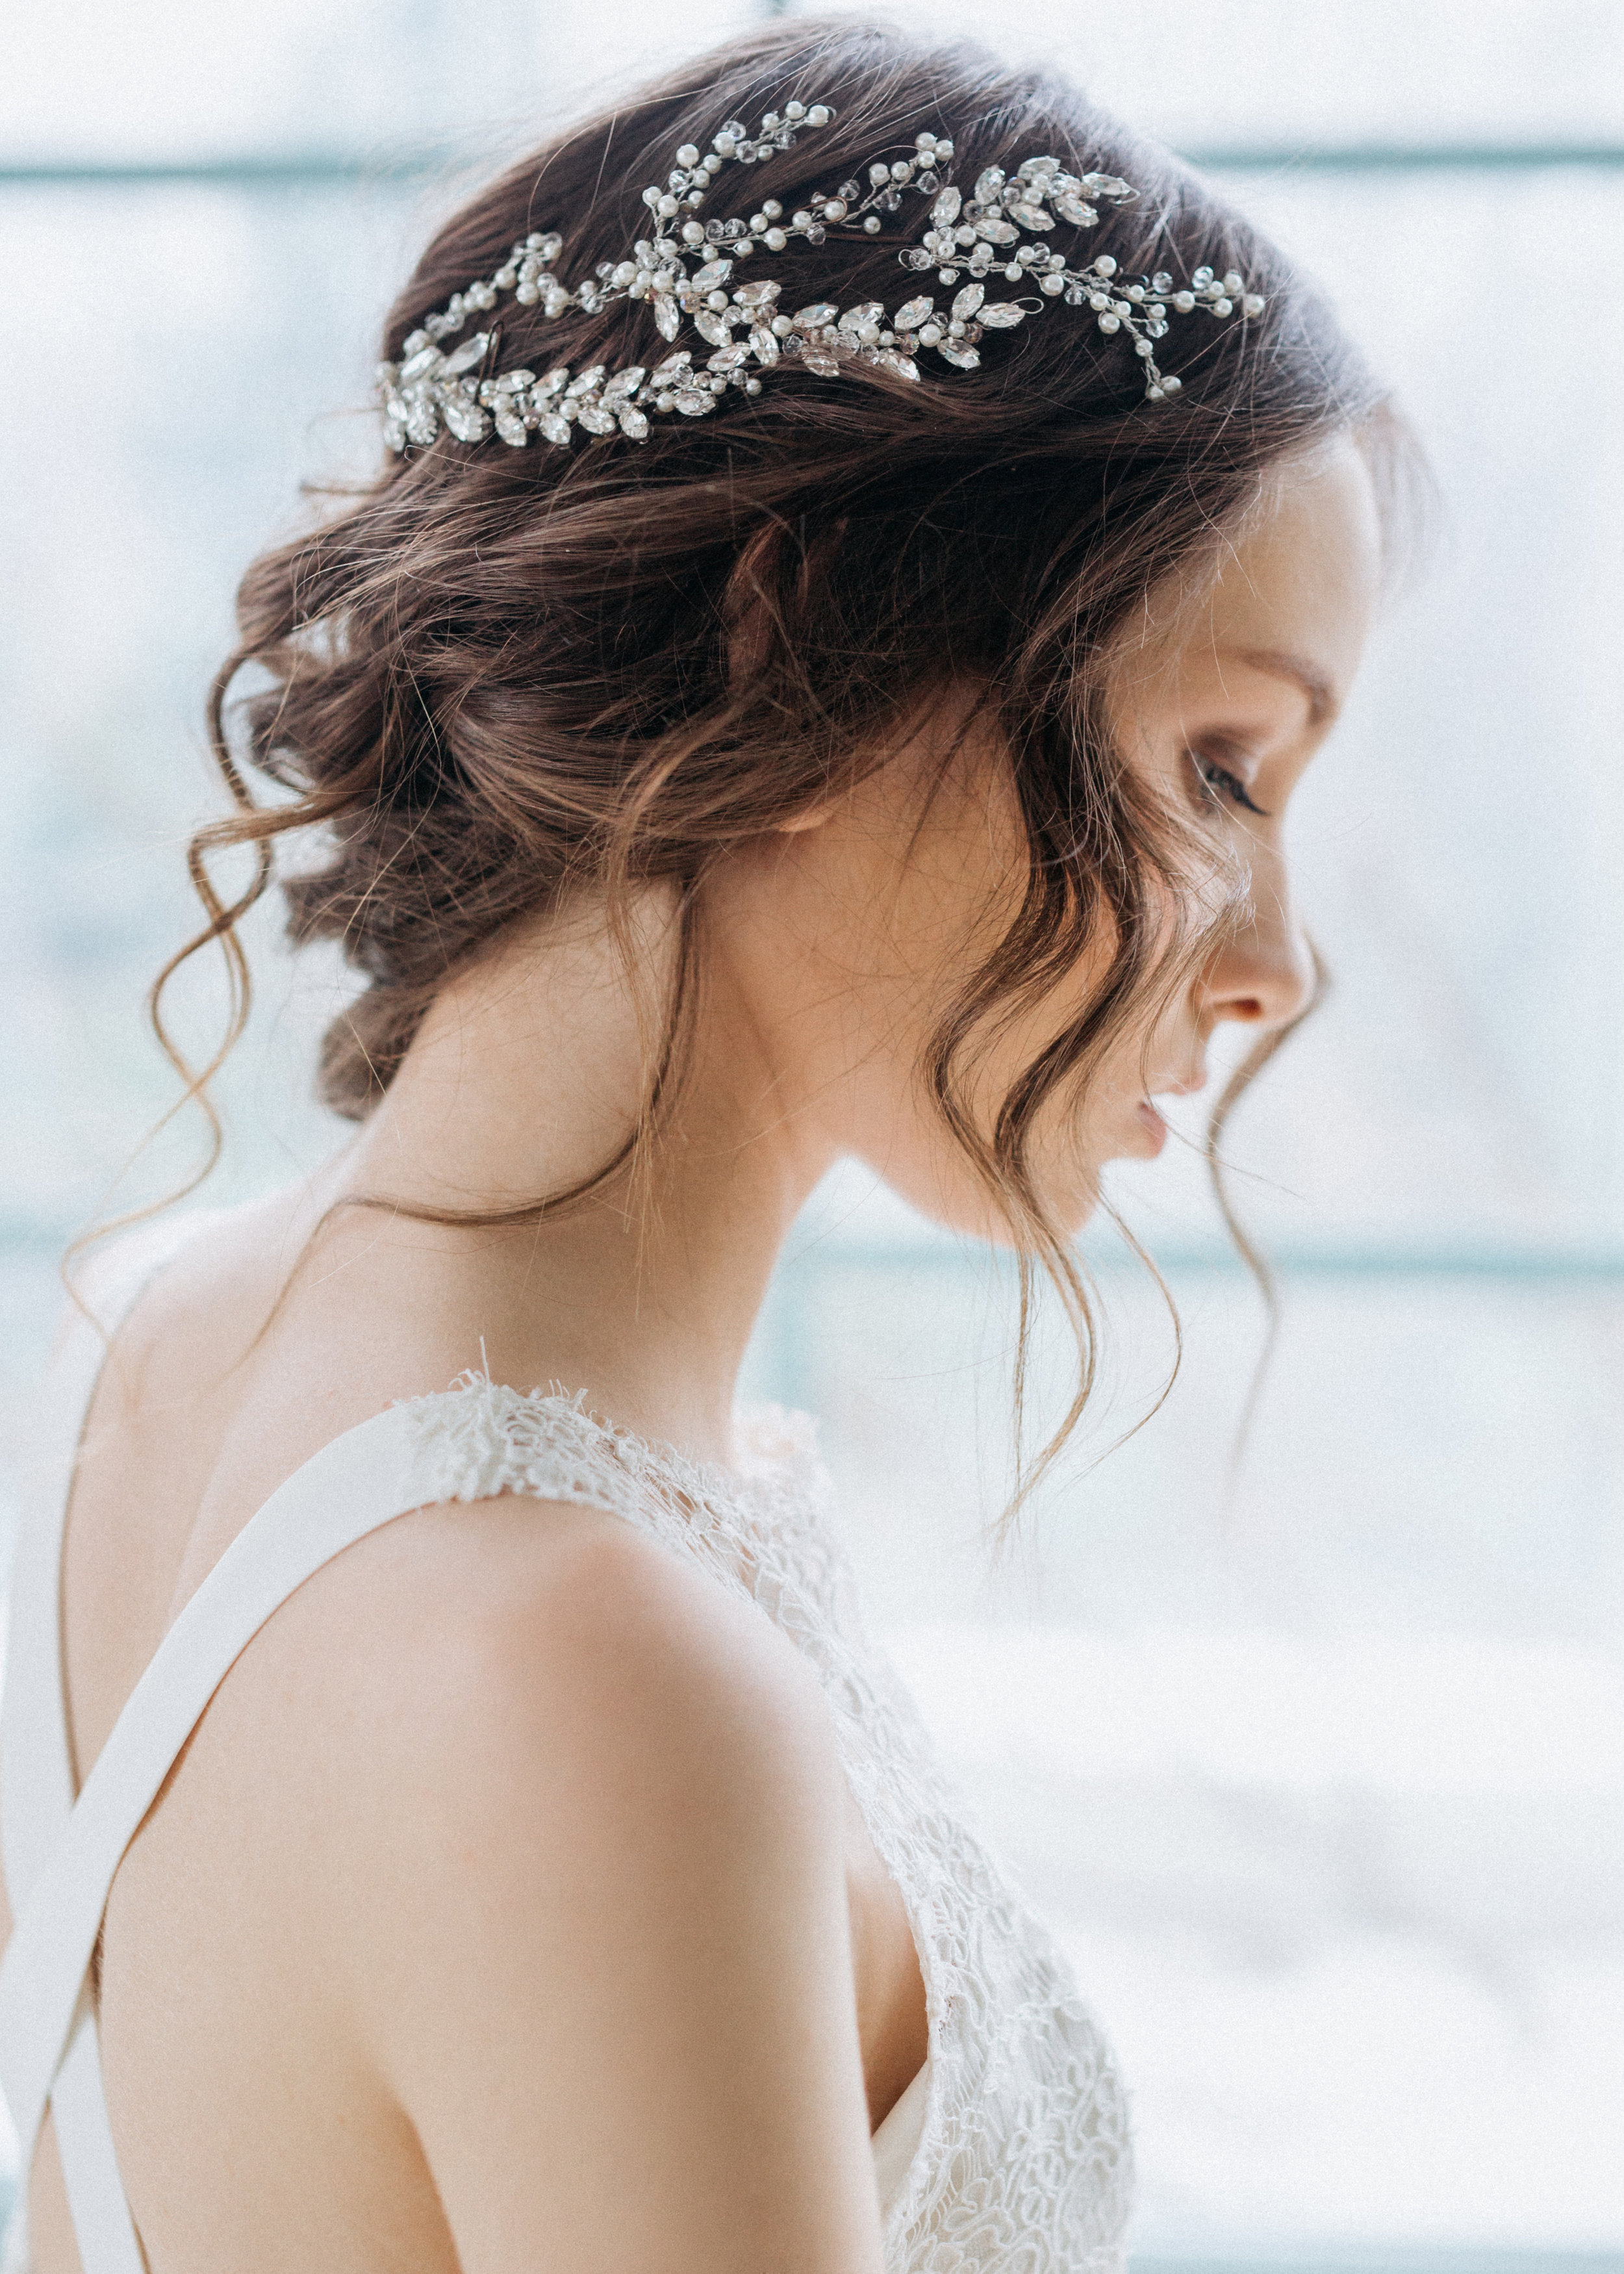 Find your perfect Crystal Headpiece - Handmade in SwitzerlandUnique DesignPossibility to Rush OrdersFree Shipping WorldwideCustomisable OrdersFast response on your questions